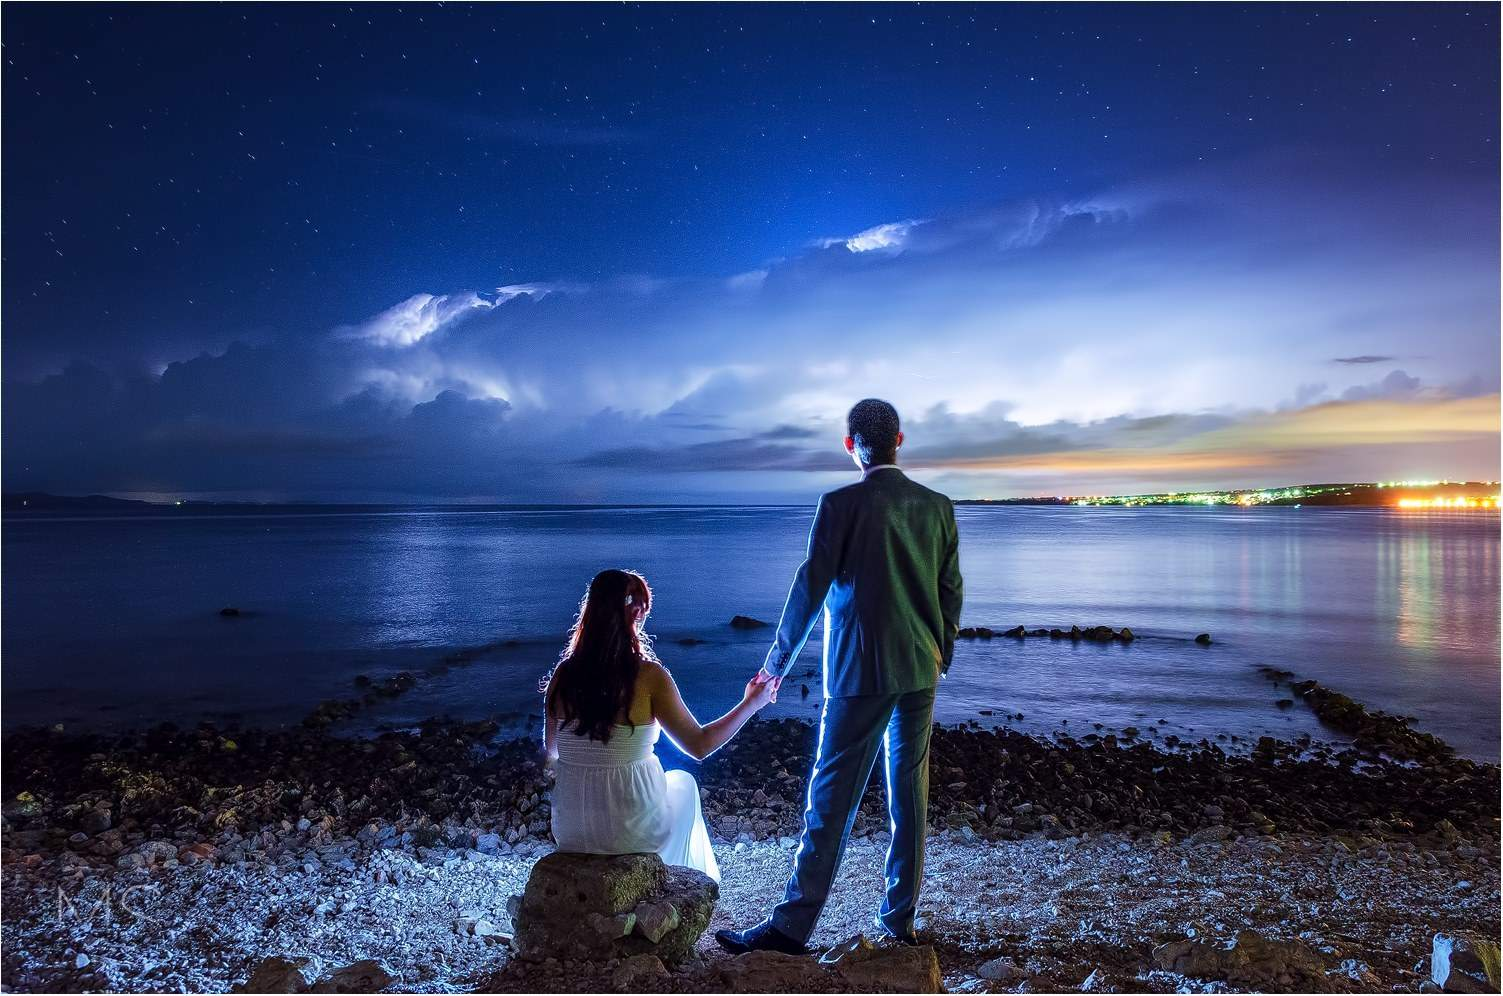 Last night (5.09.2015) we got lucky to have wedding photo session and approaching cold front. So we combine that two and this is a product Zadar / Croatia